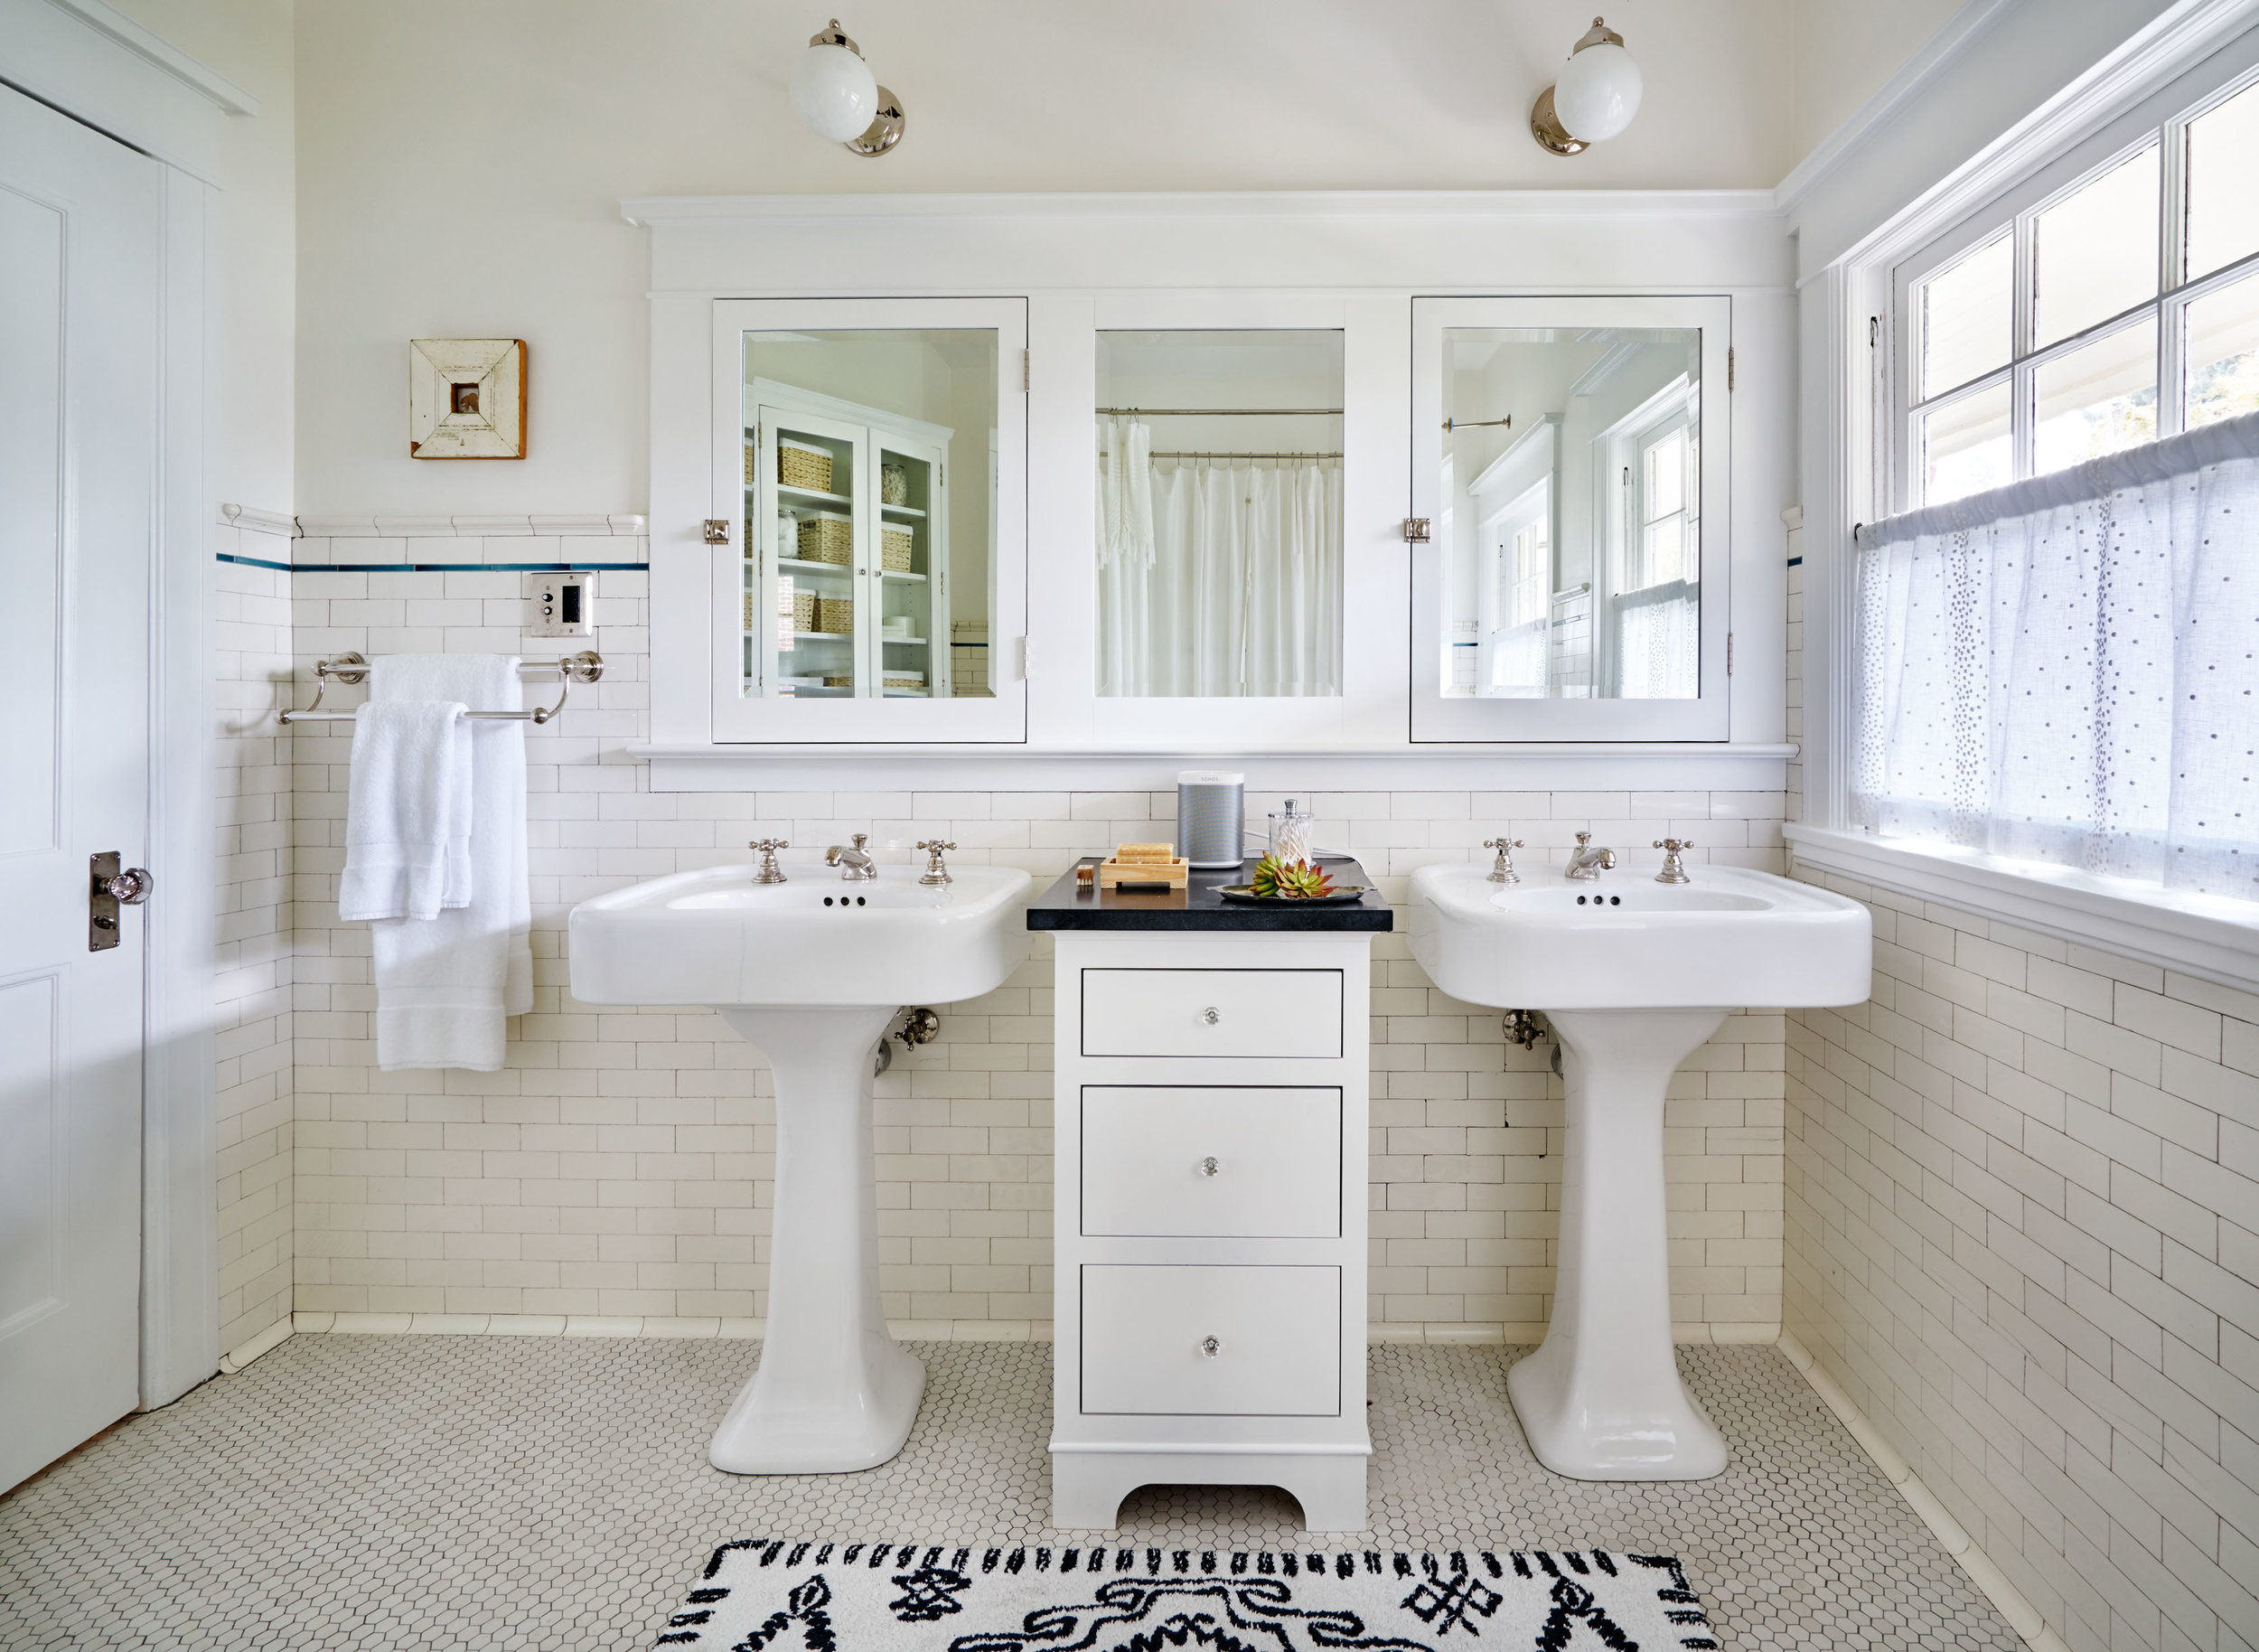 Added sink and medicine cabinet blend with original in upstairs bath.